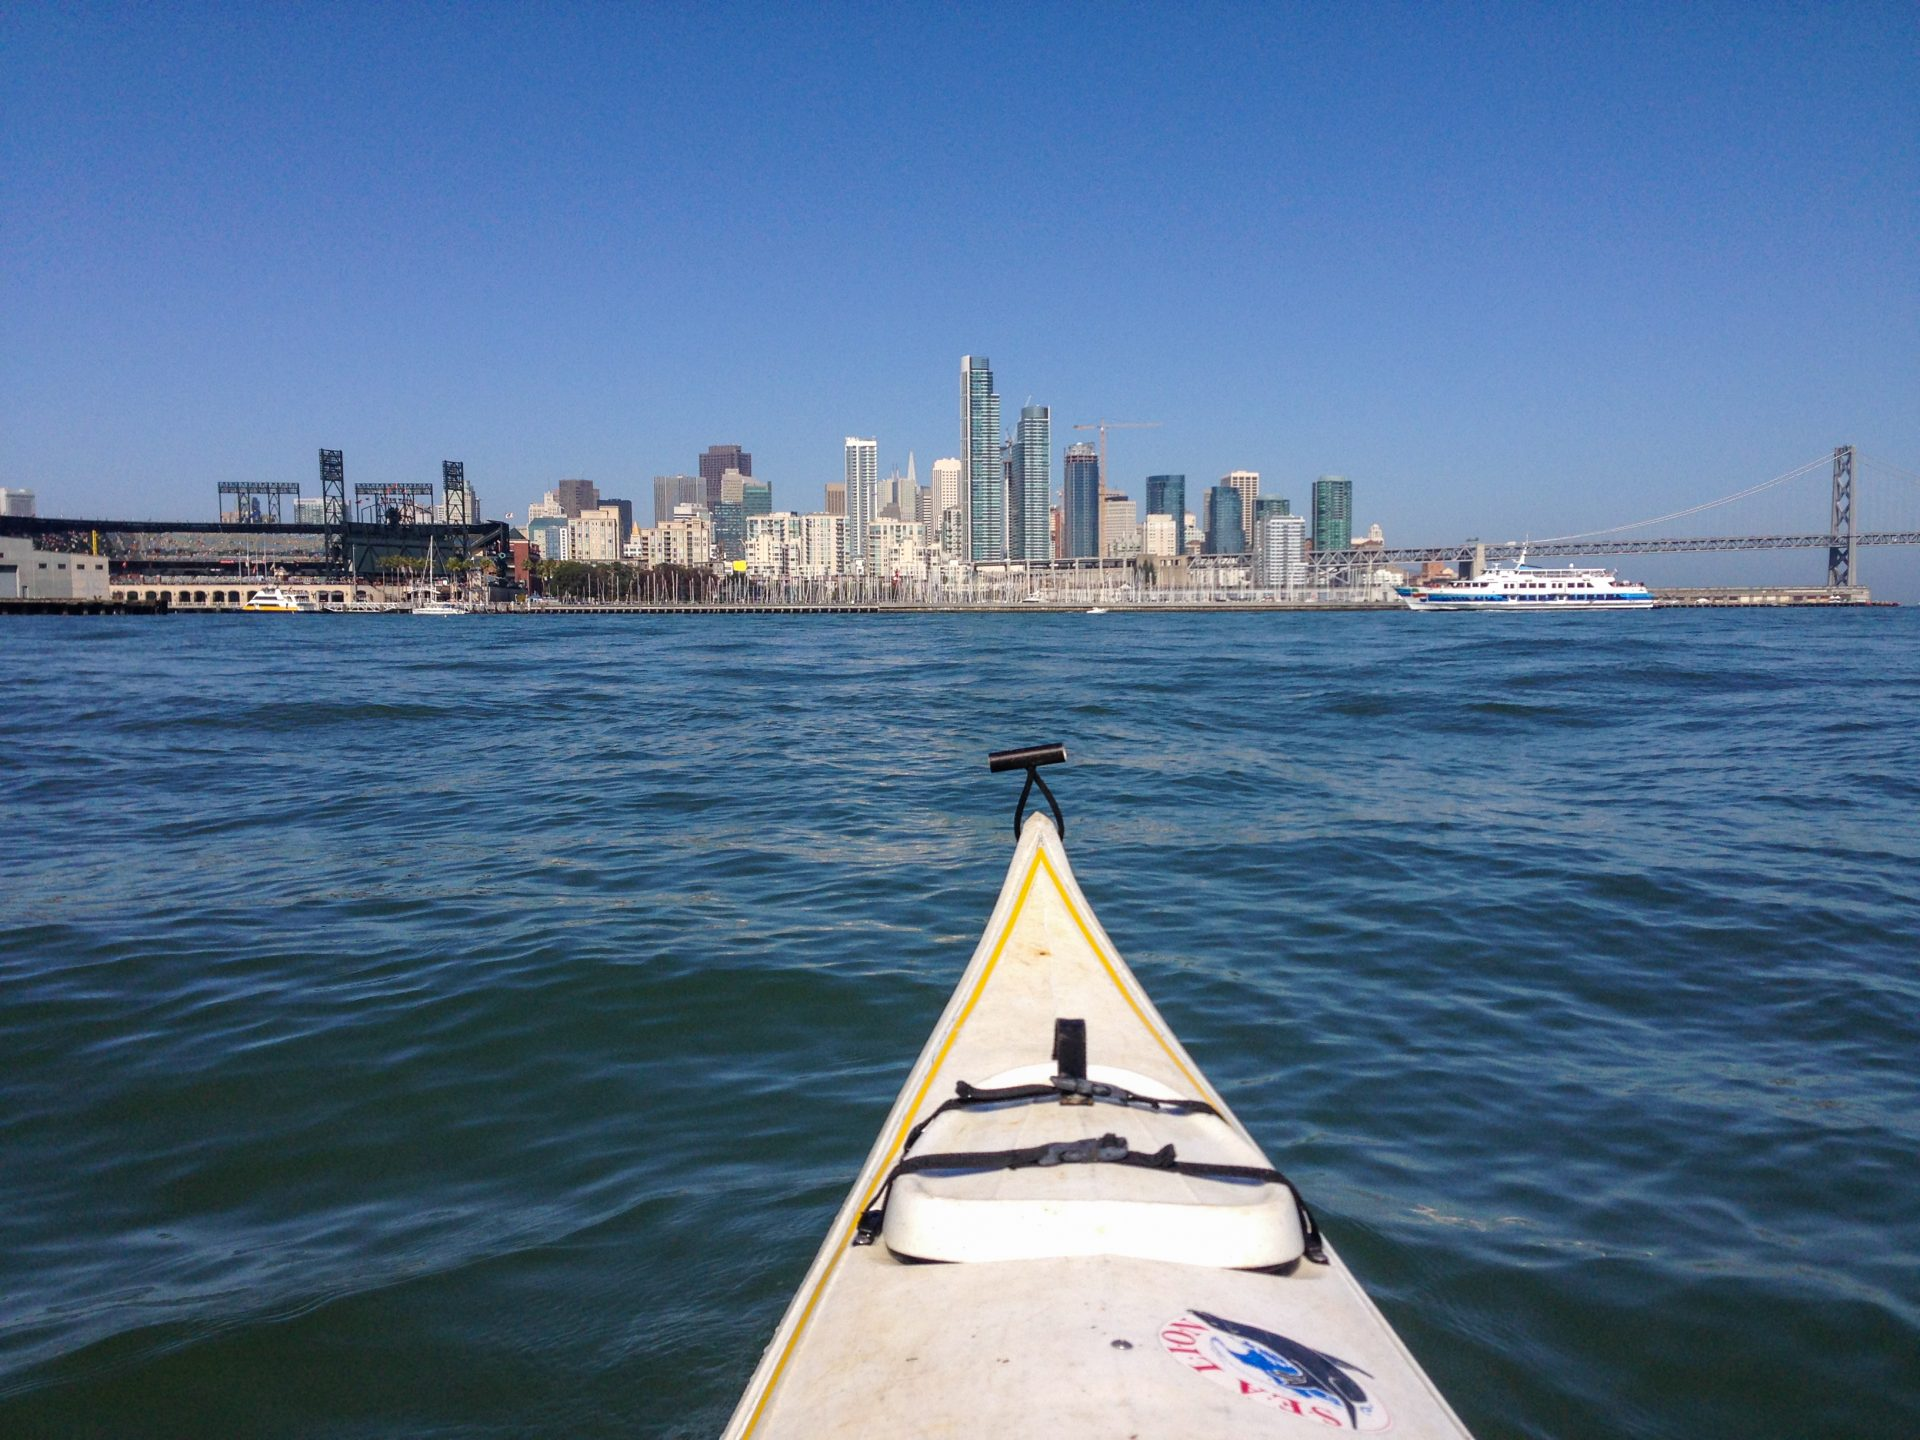 Looking from kayak to Sf, with large ferry crossing right to left